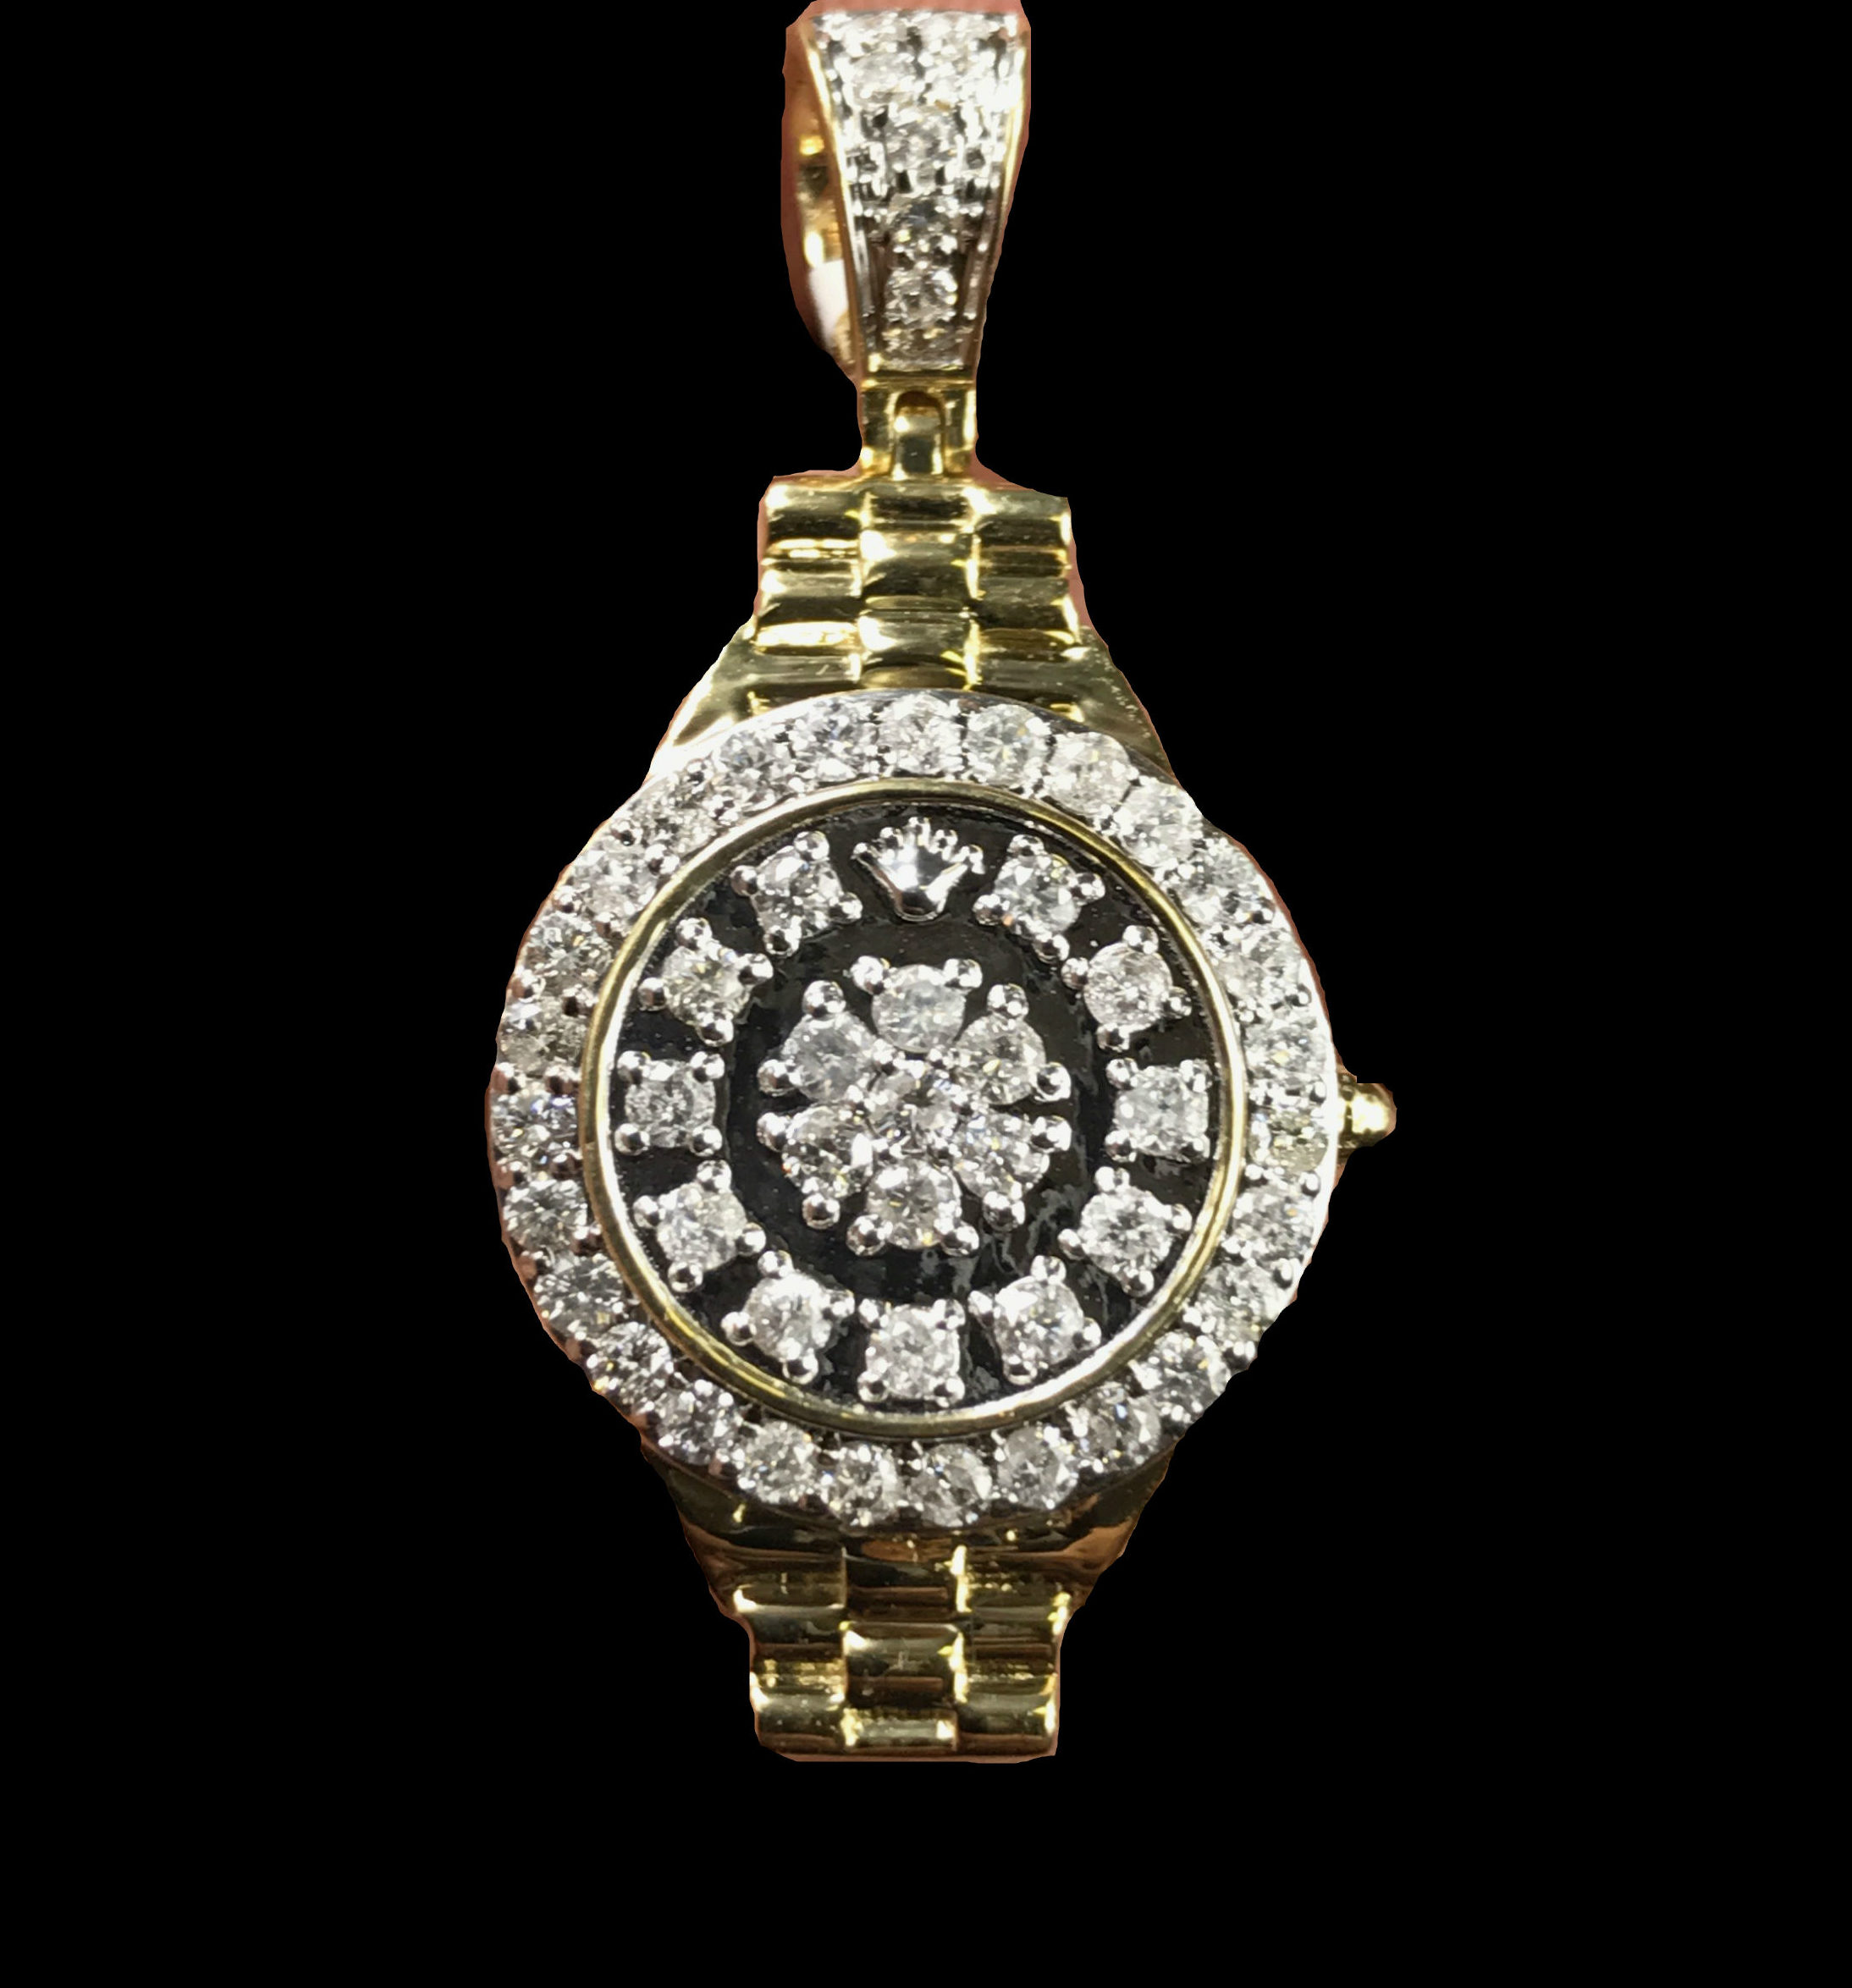 Diamond rolex watch pendant frostbid the product is already in the wishlist browse wishlist mozeypictures